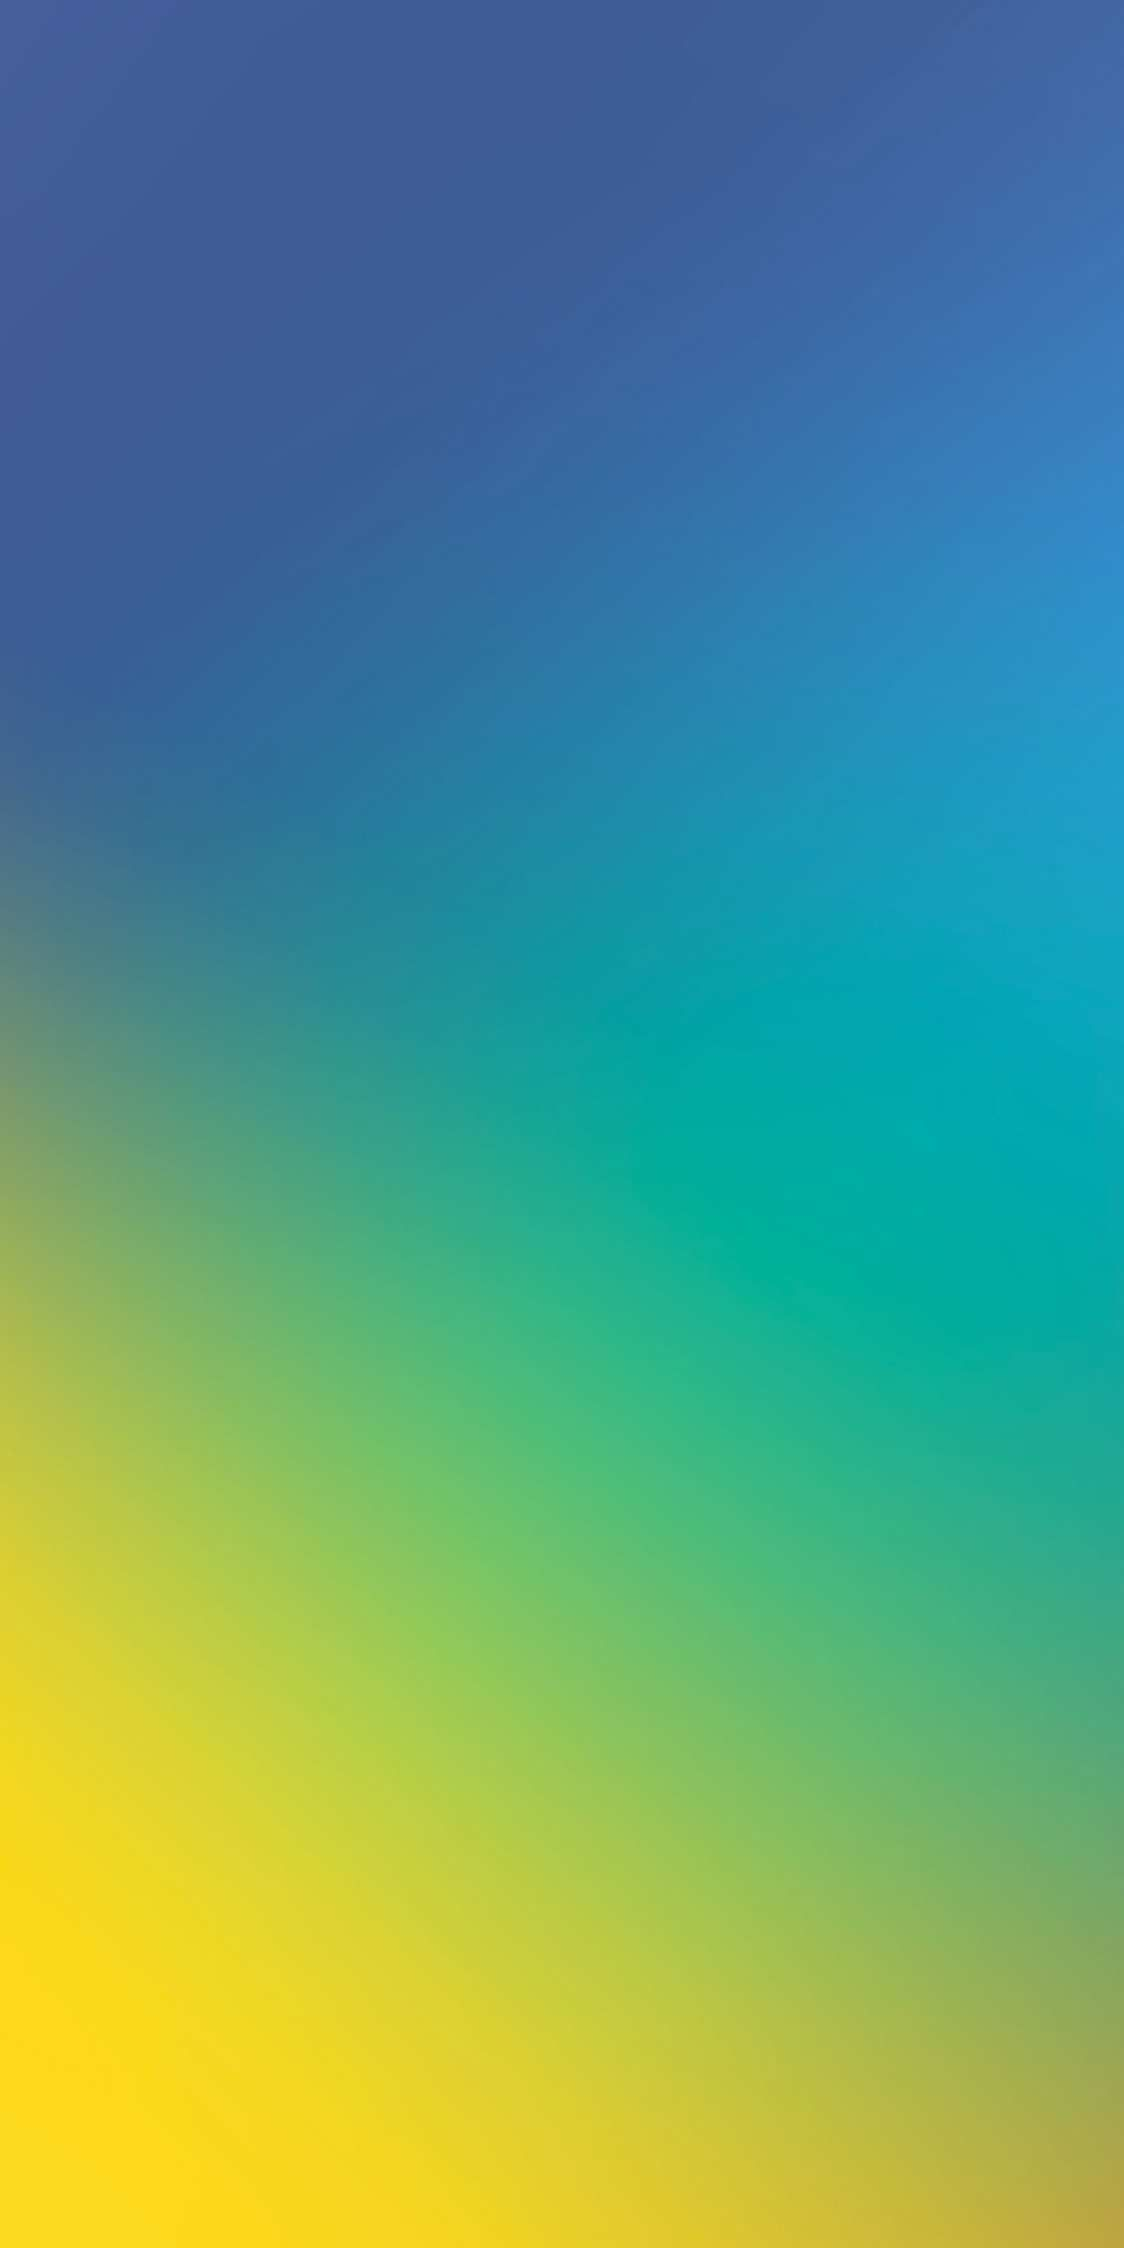 Blue And Yellow Gradient Background Iphone Wallpaper Iphone Wallpaper Gradient Iphone Background Samsung Wallpaper